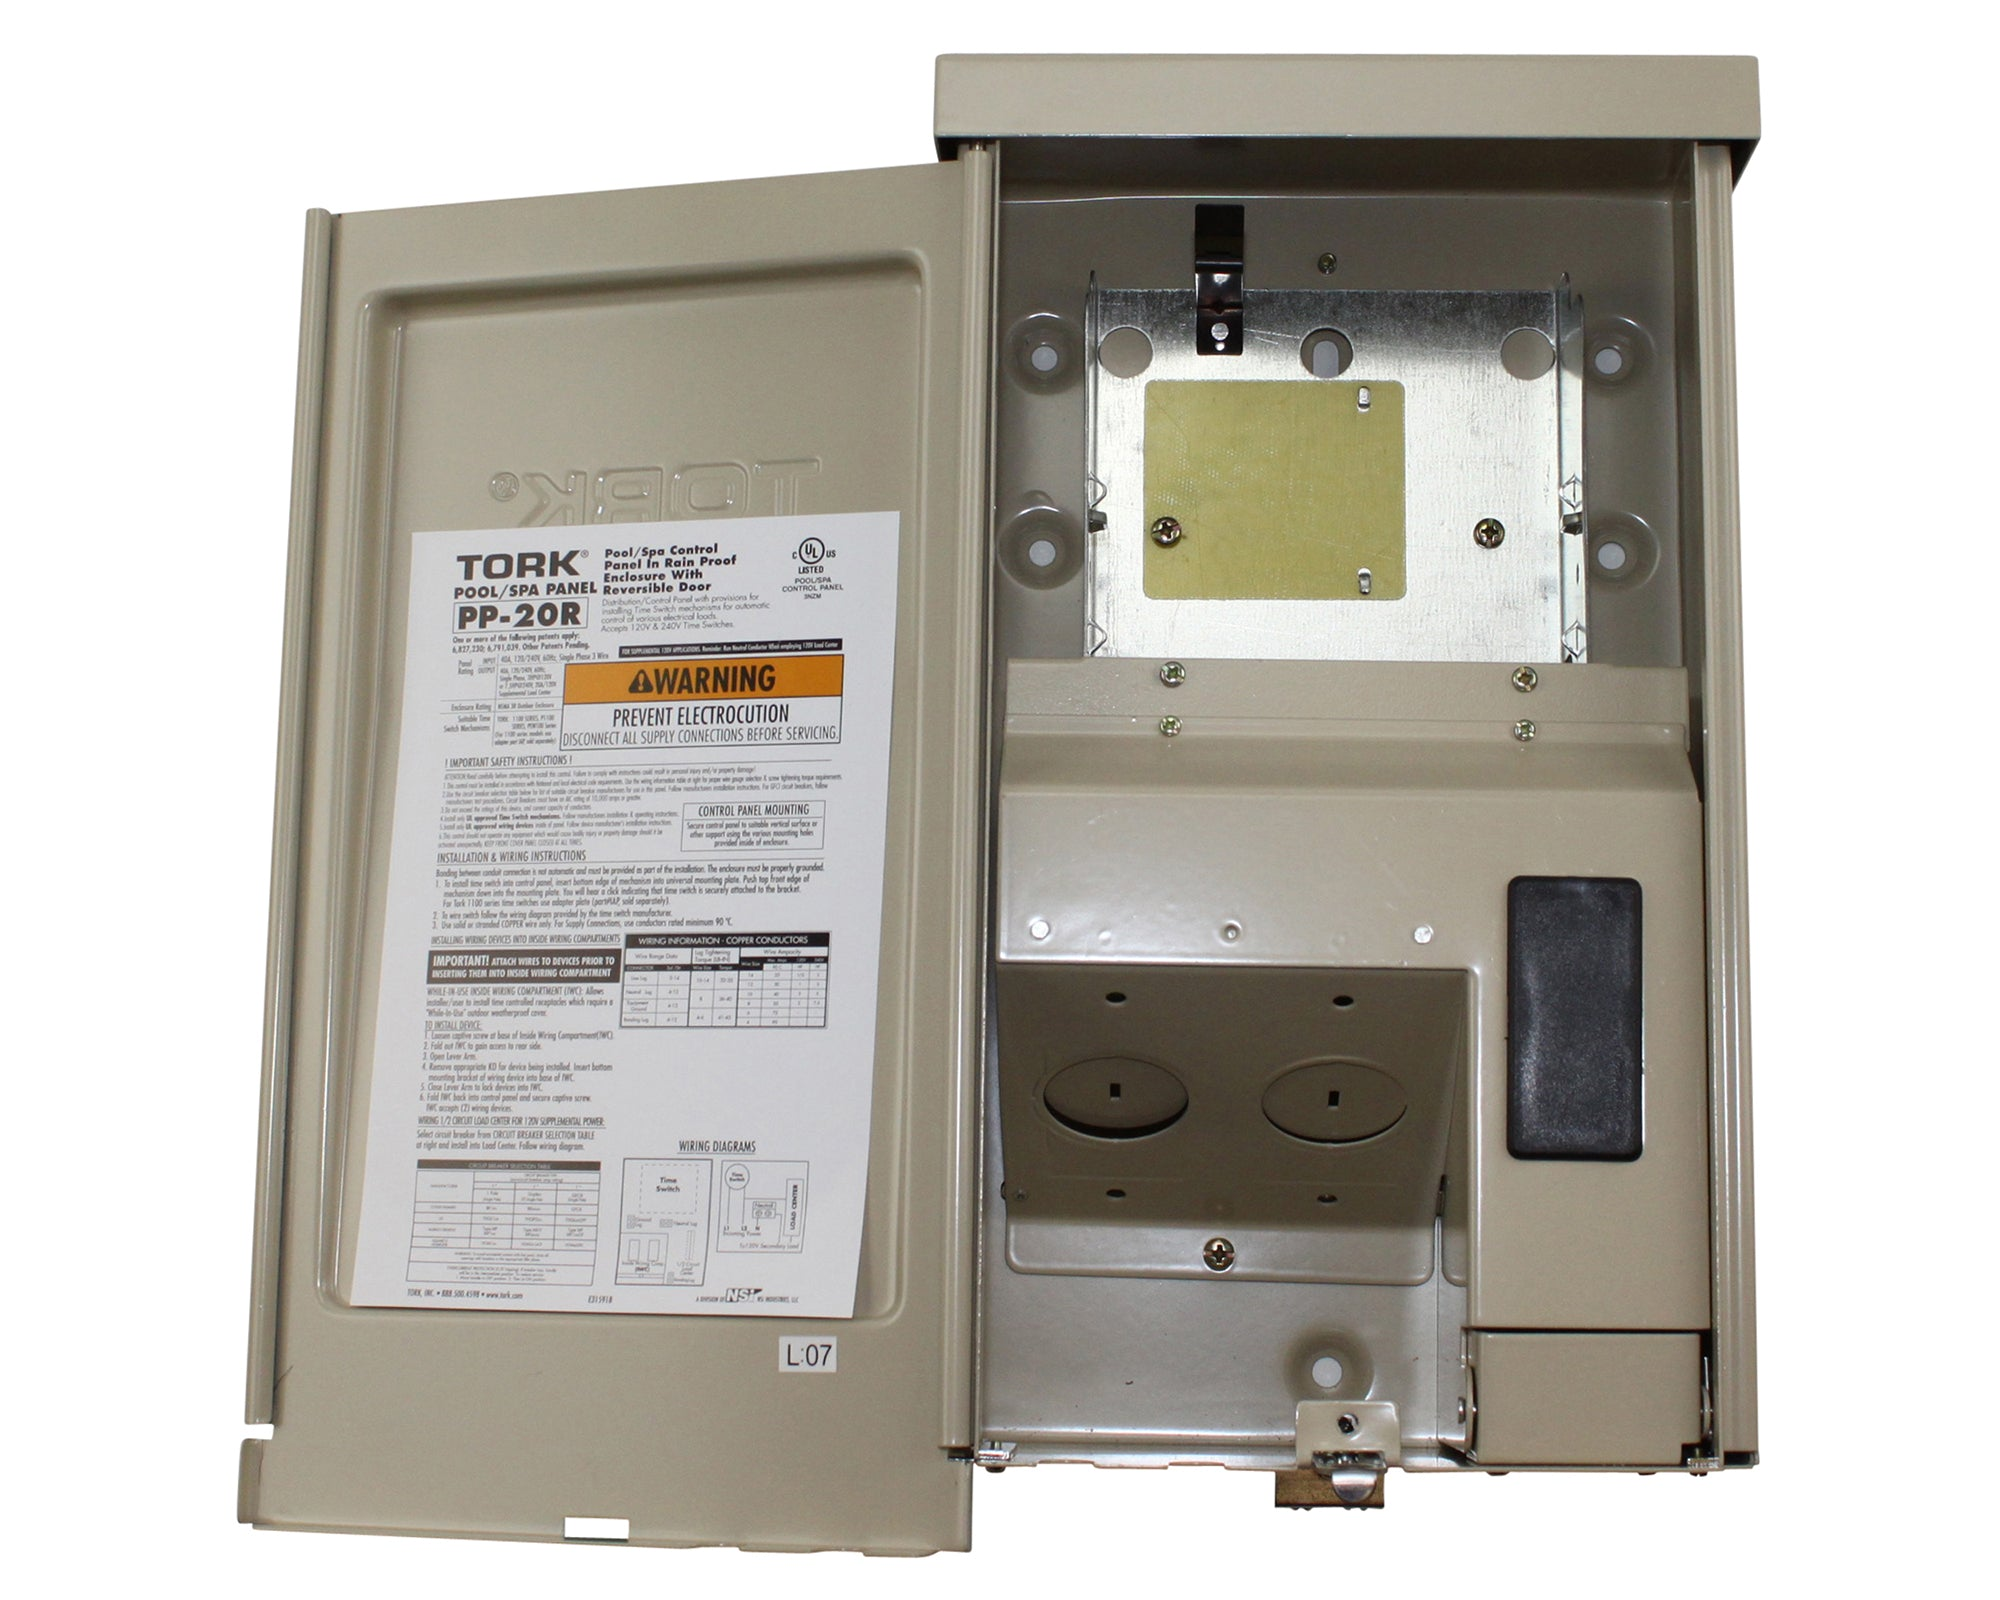 TORK NSI TIMER POWER PANEL FOR POOL SPA LIGHTING W// FREEZE PROTECT PP-20R-P4